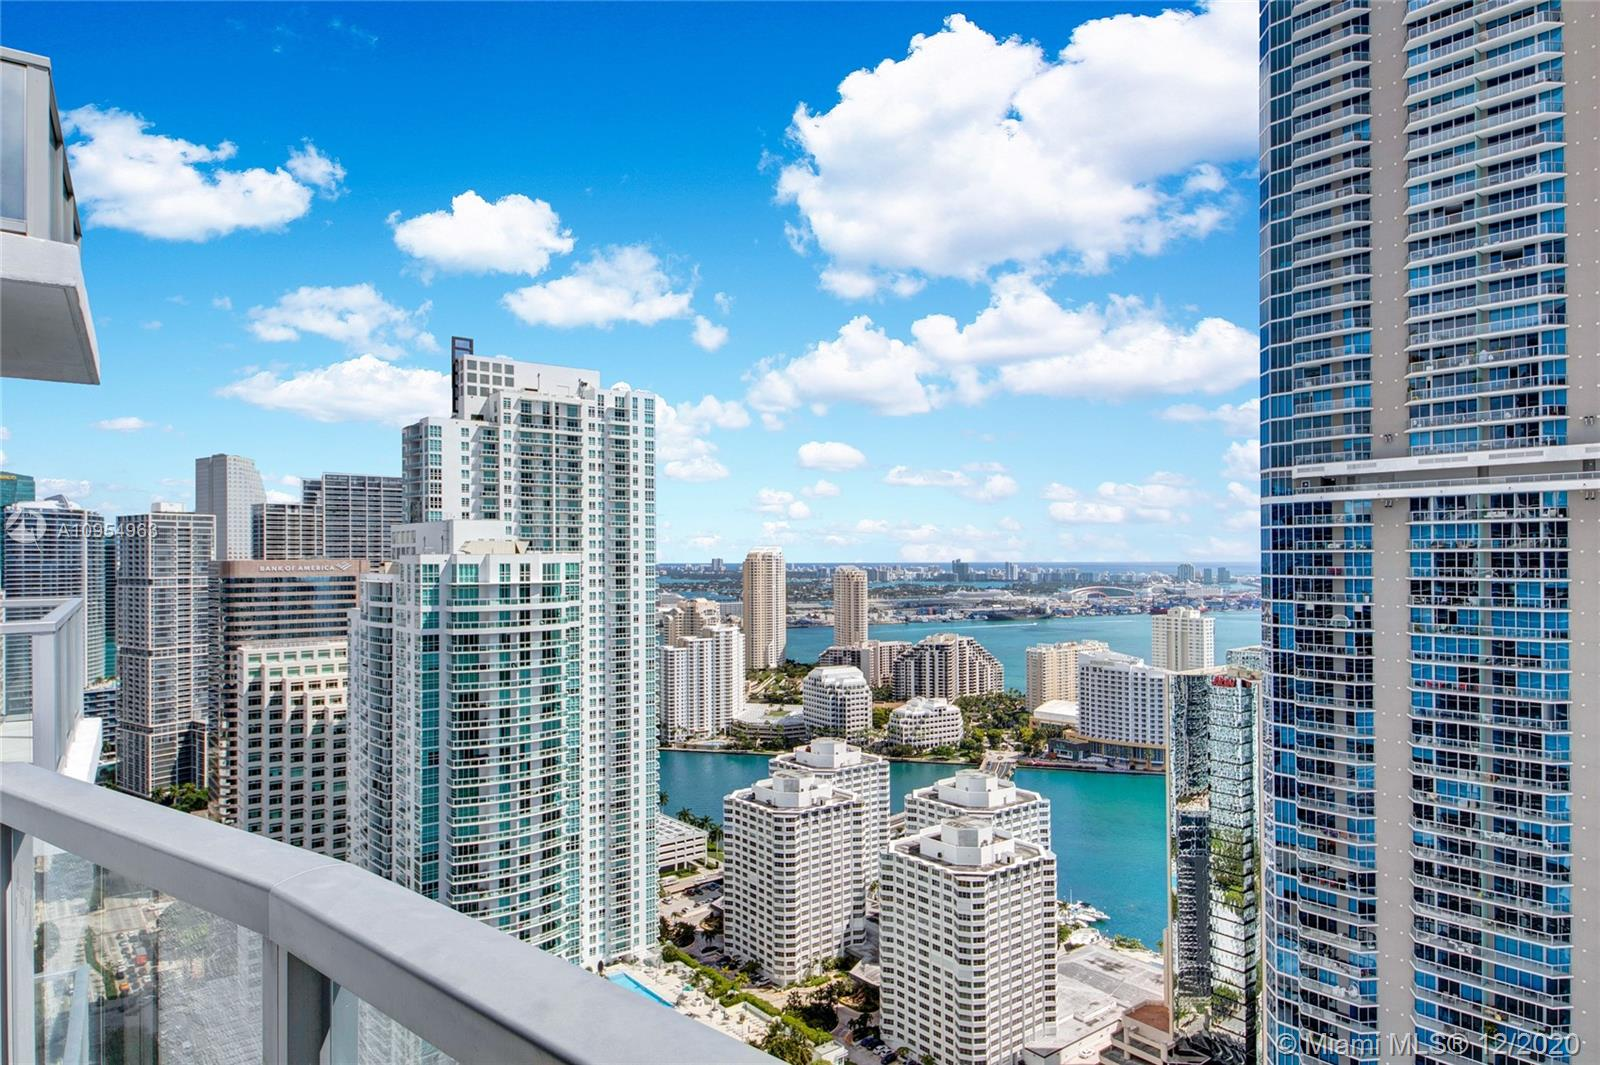 1060 Brickell West Tower #4303 - 1060 Brickell Ave #4303, Miami, FL 33131